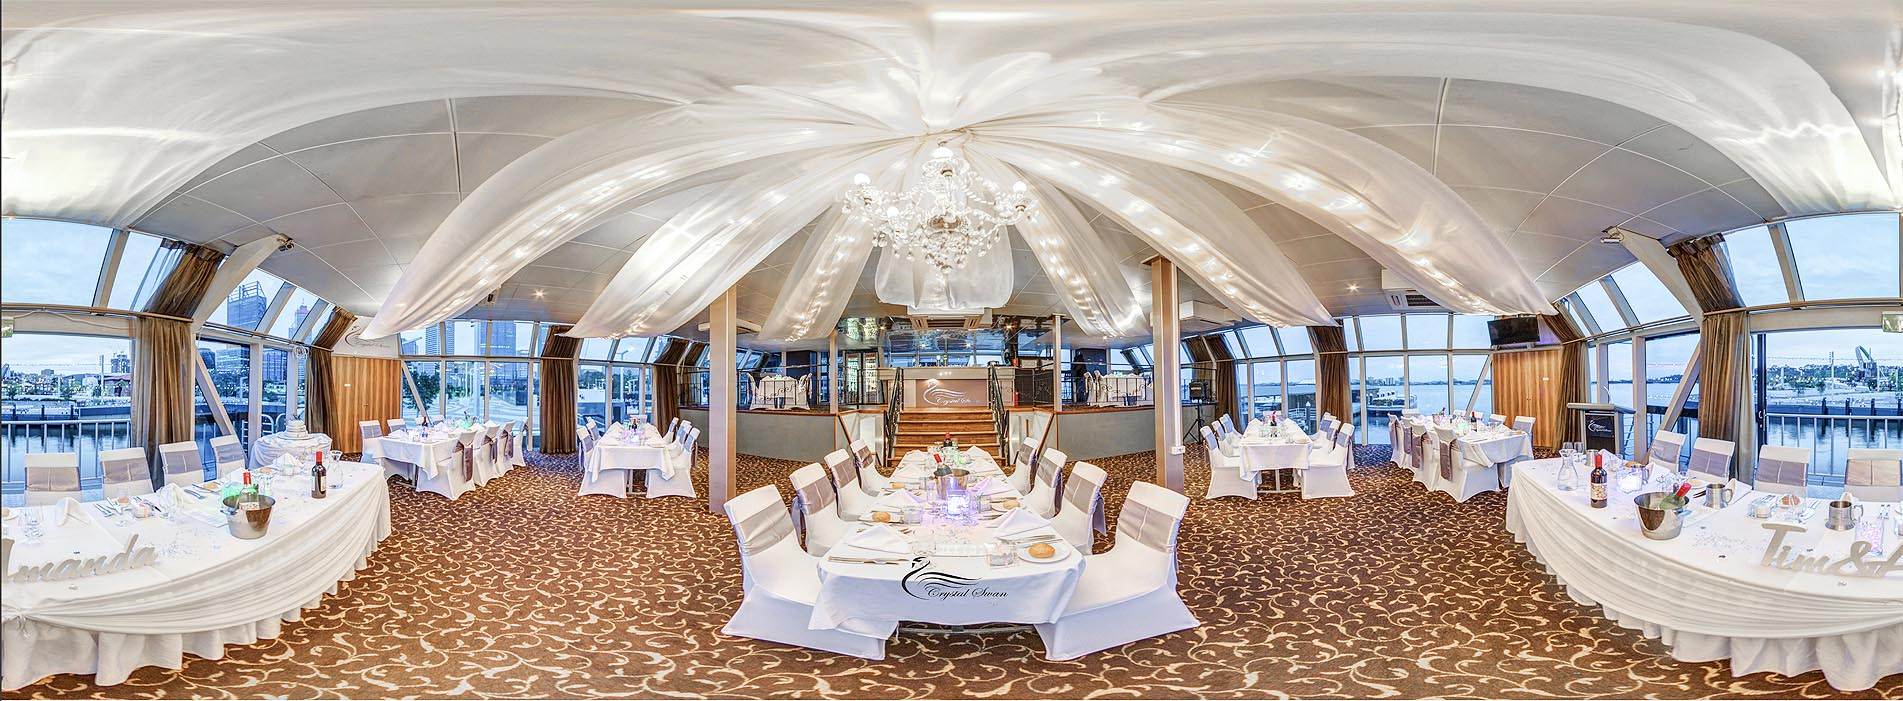 CRYSTAL SWAN BOAT CHARTER DINING MAIN LOUNGE